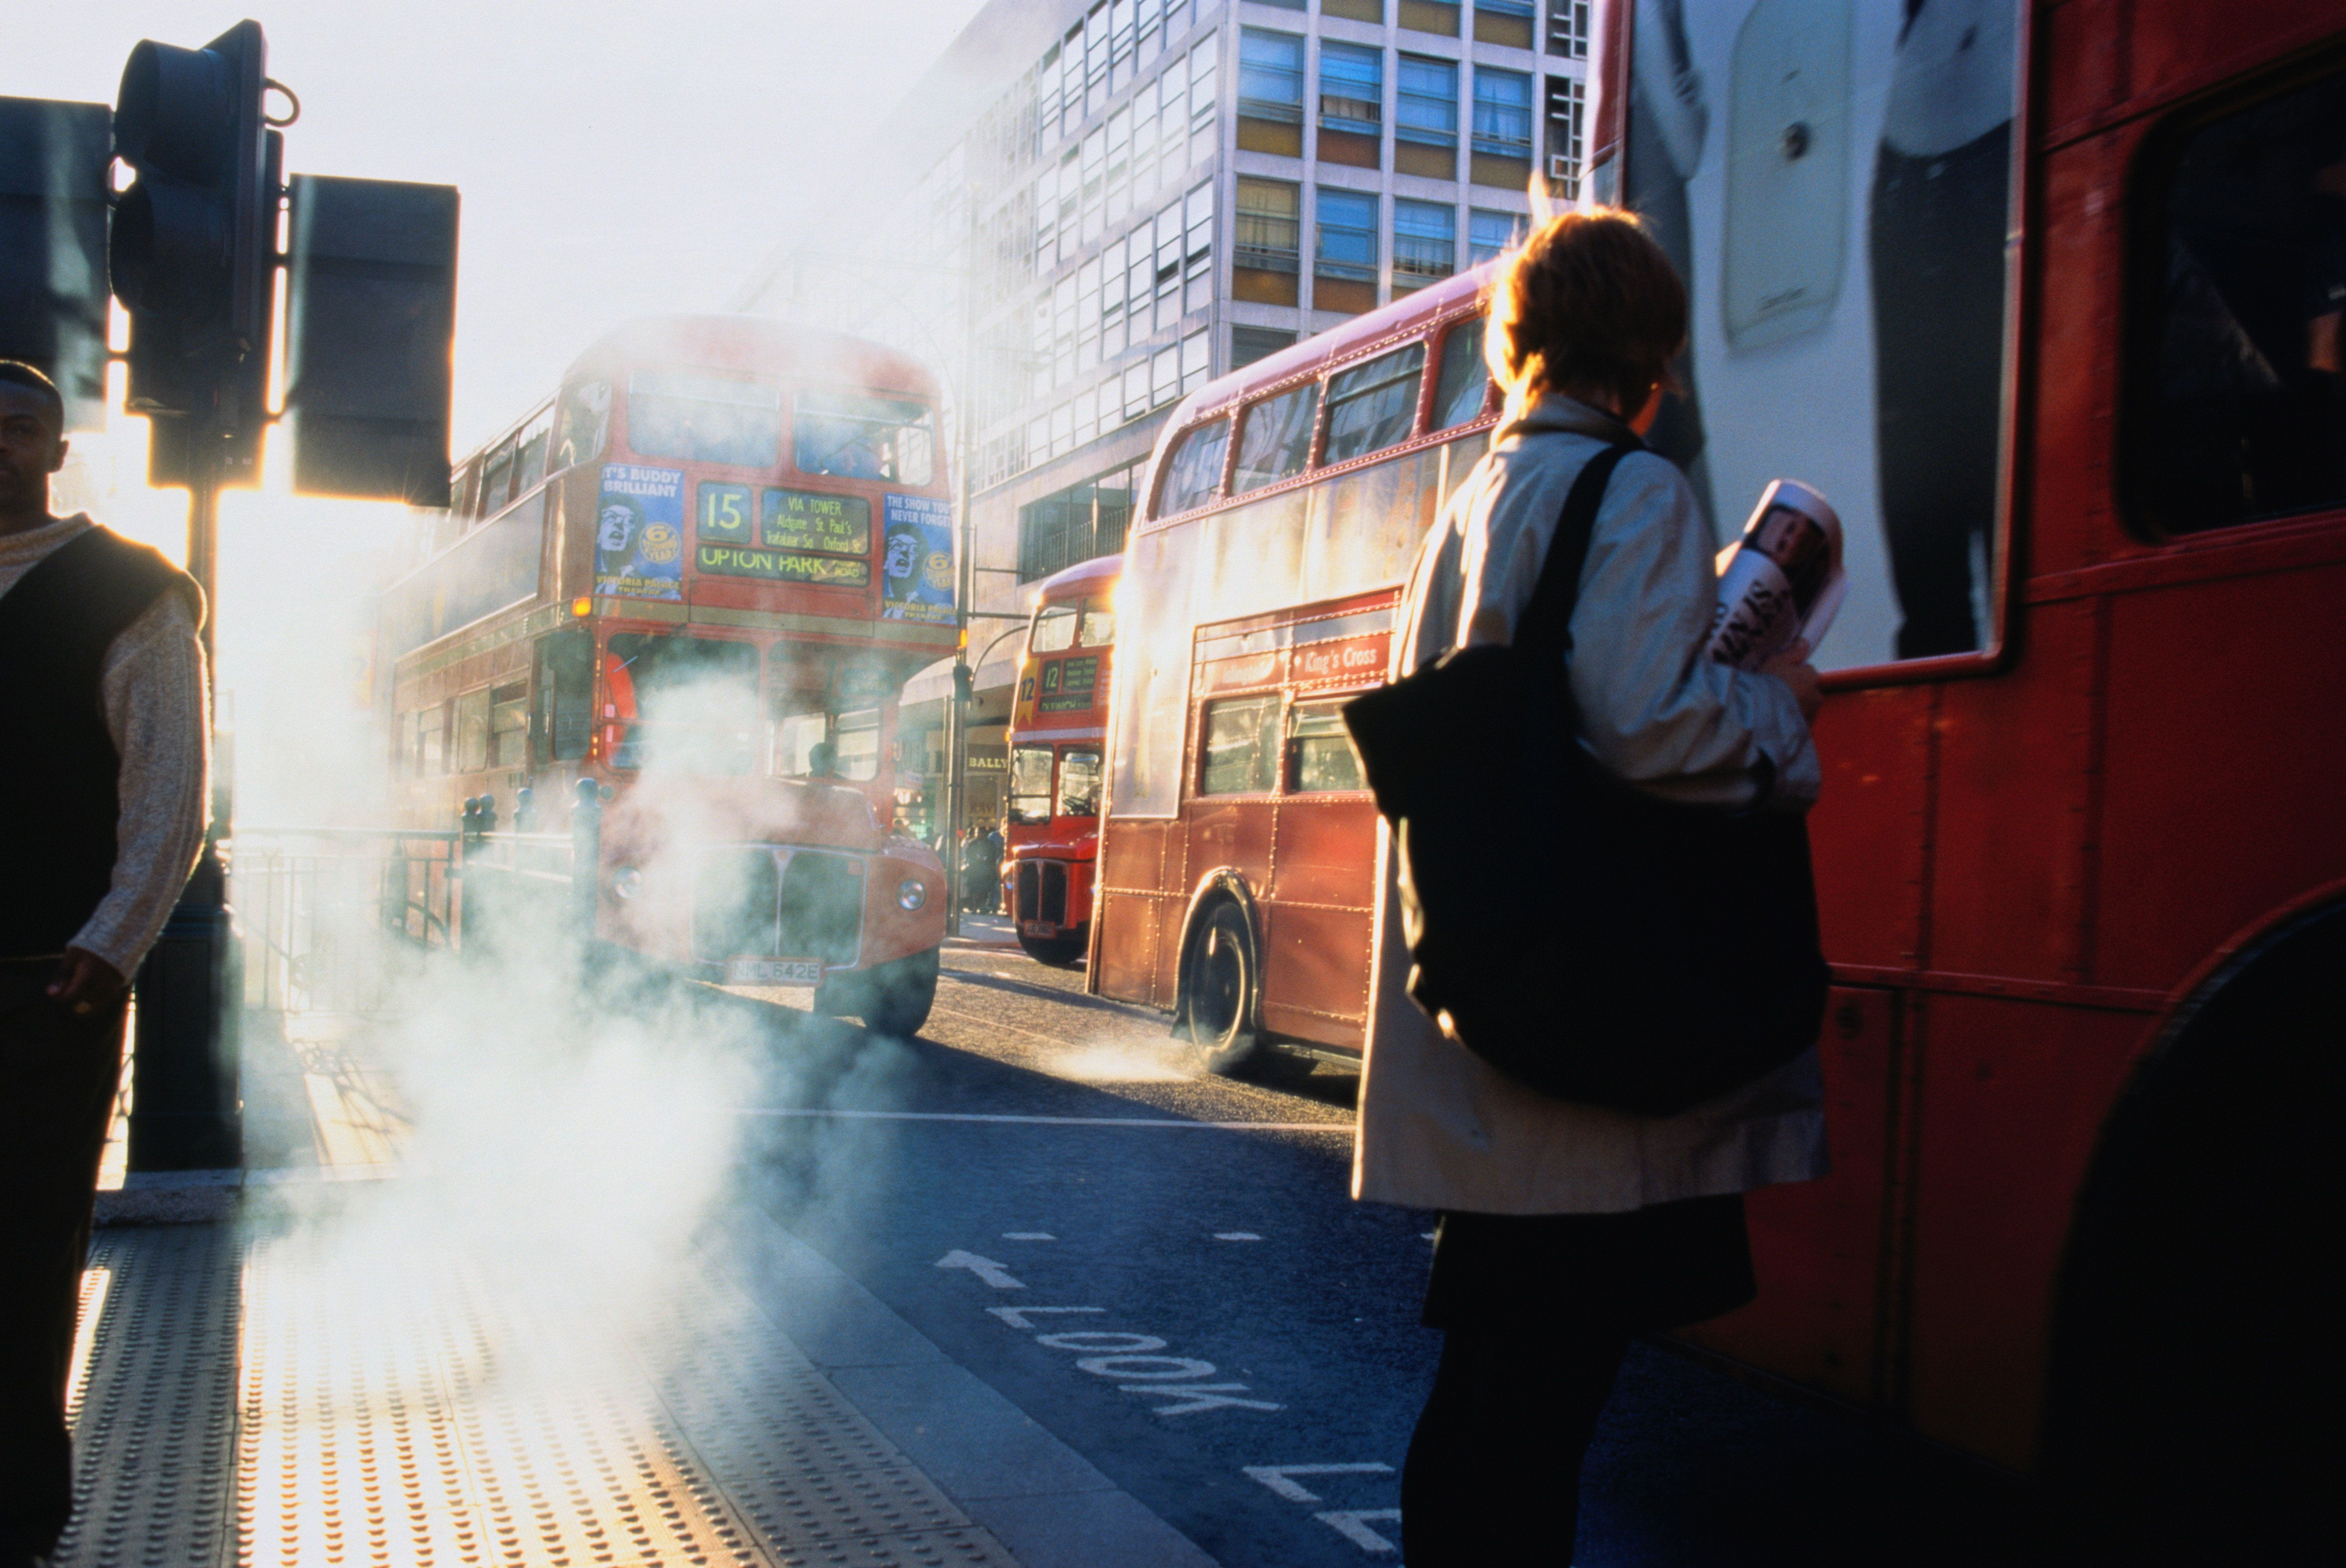 'It Feels Like My Lungs Are On Fire' - Asthma Sufferers Speak Out On Air Pollution After High Risk